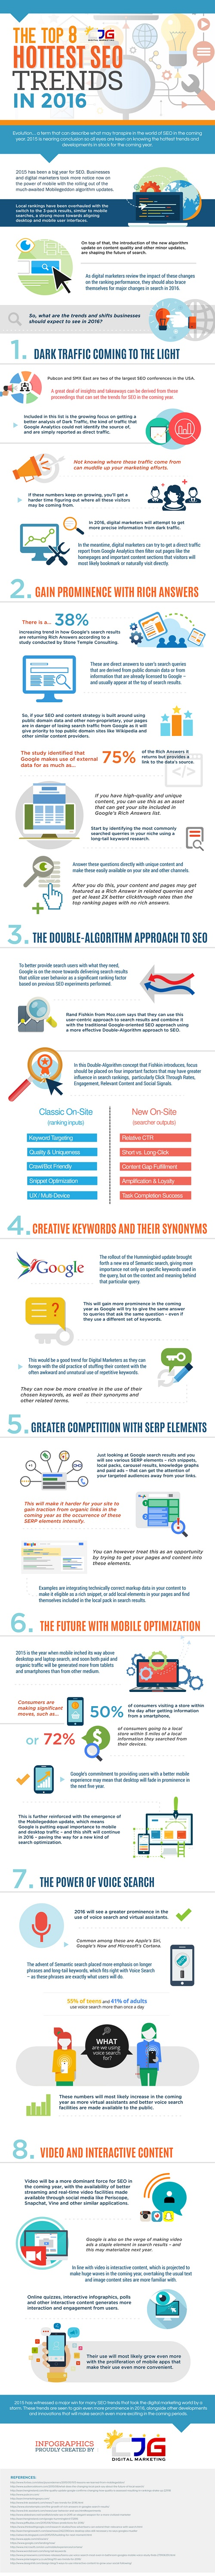 Hottest-SEO-Trends-in-2016